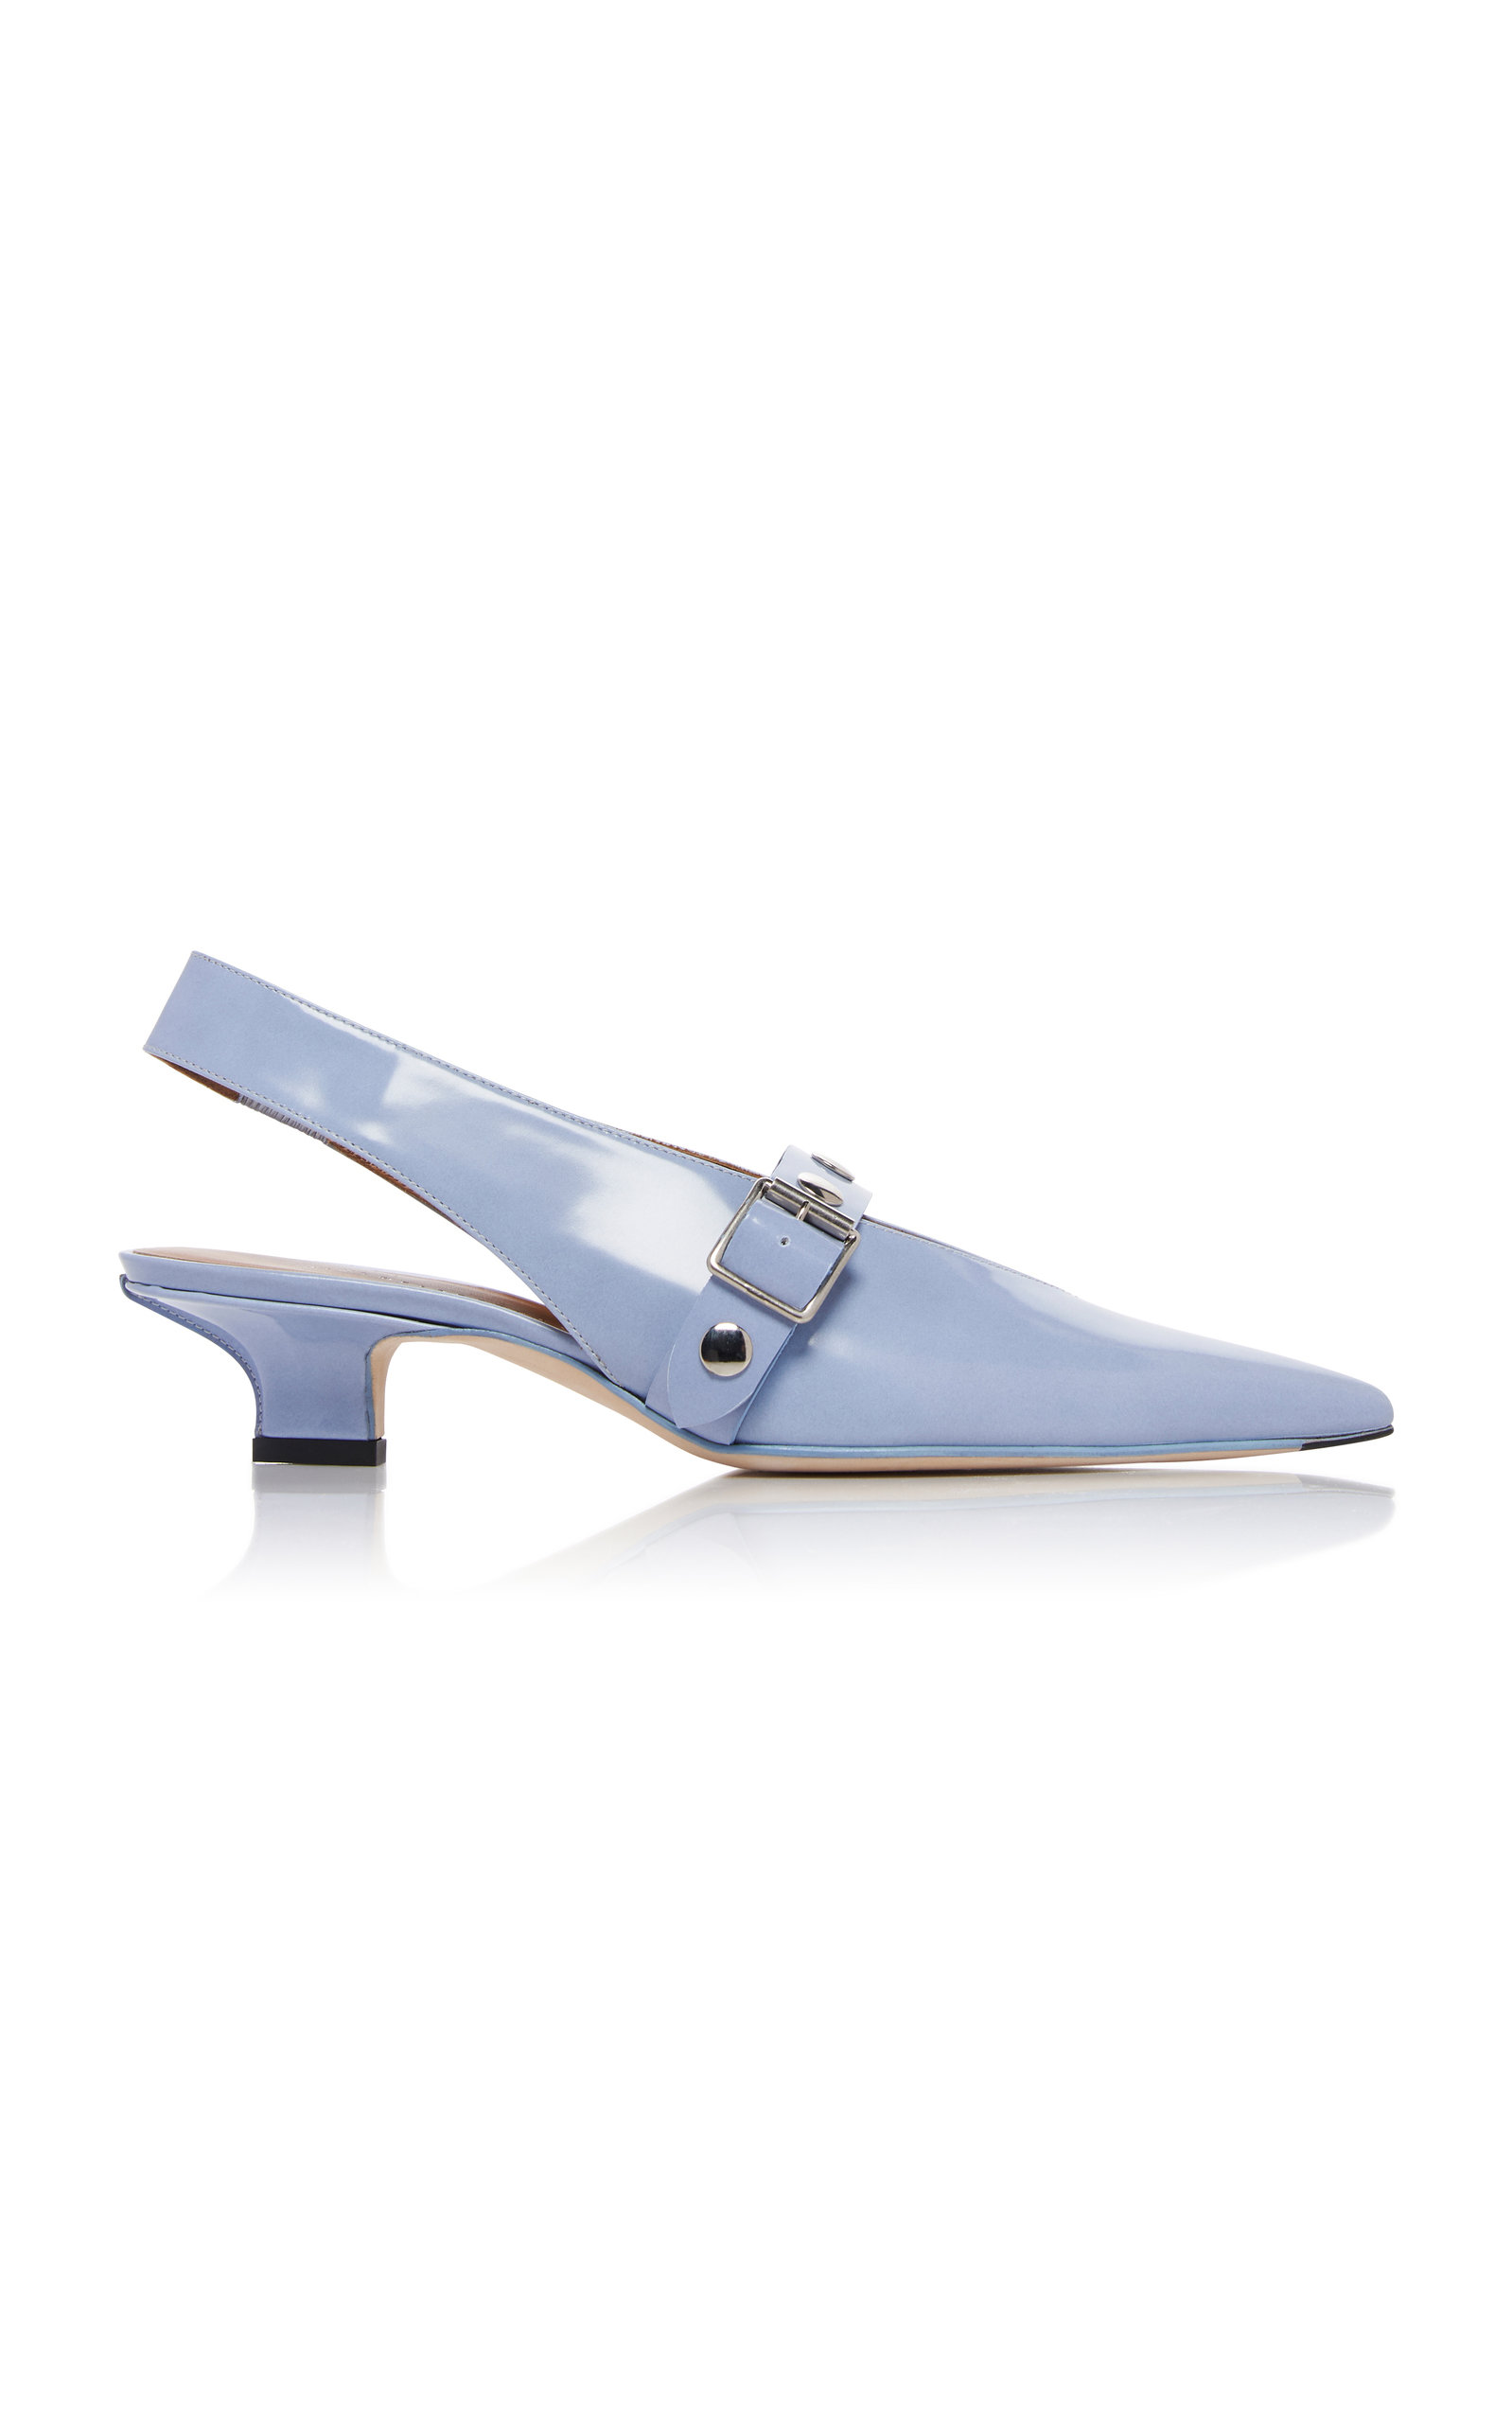 Punky Studded Buckled Patent-Leather Pumps in Blue